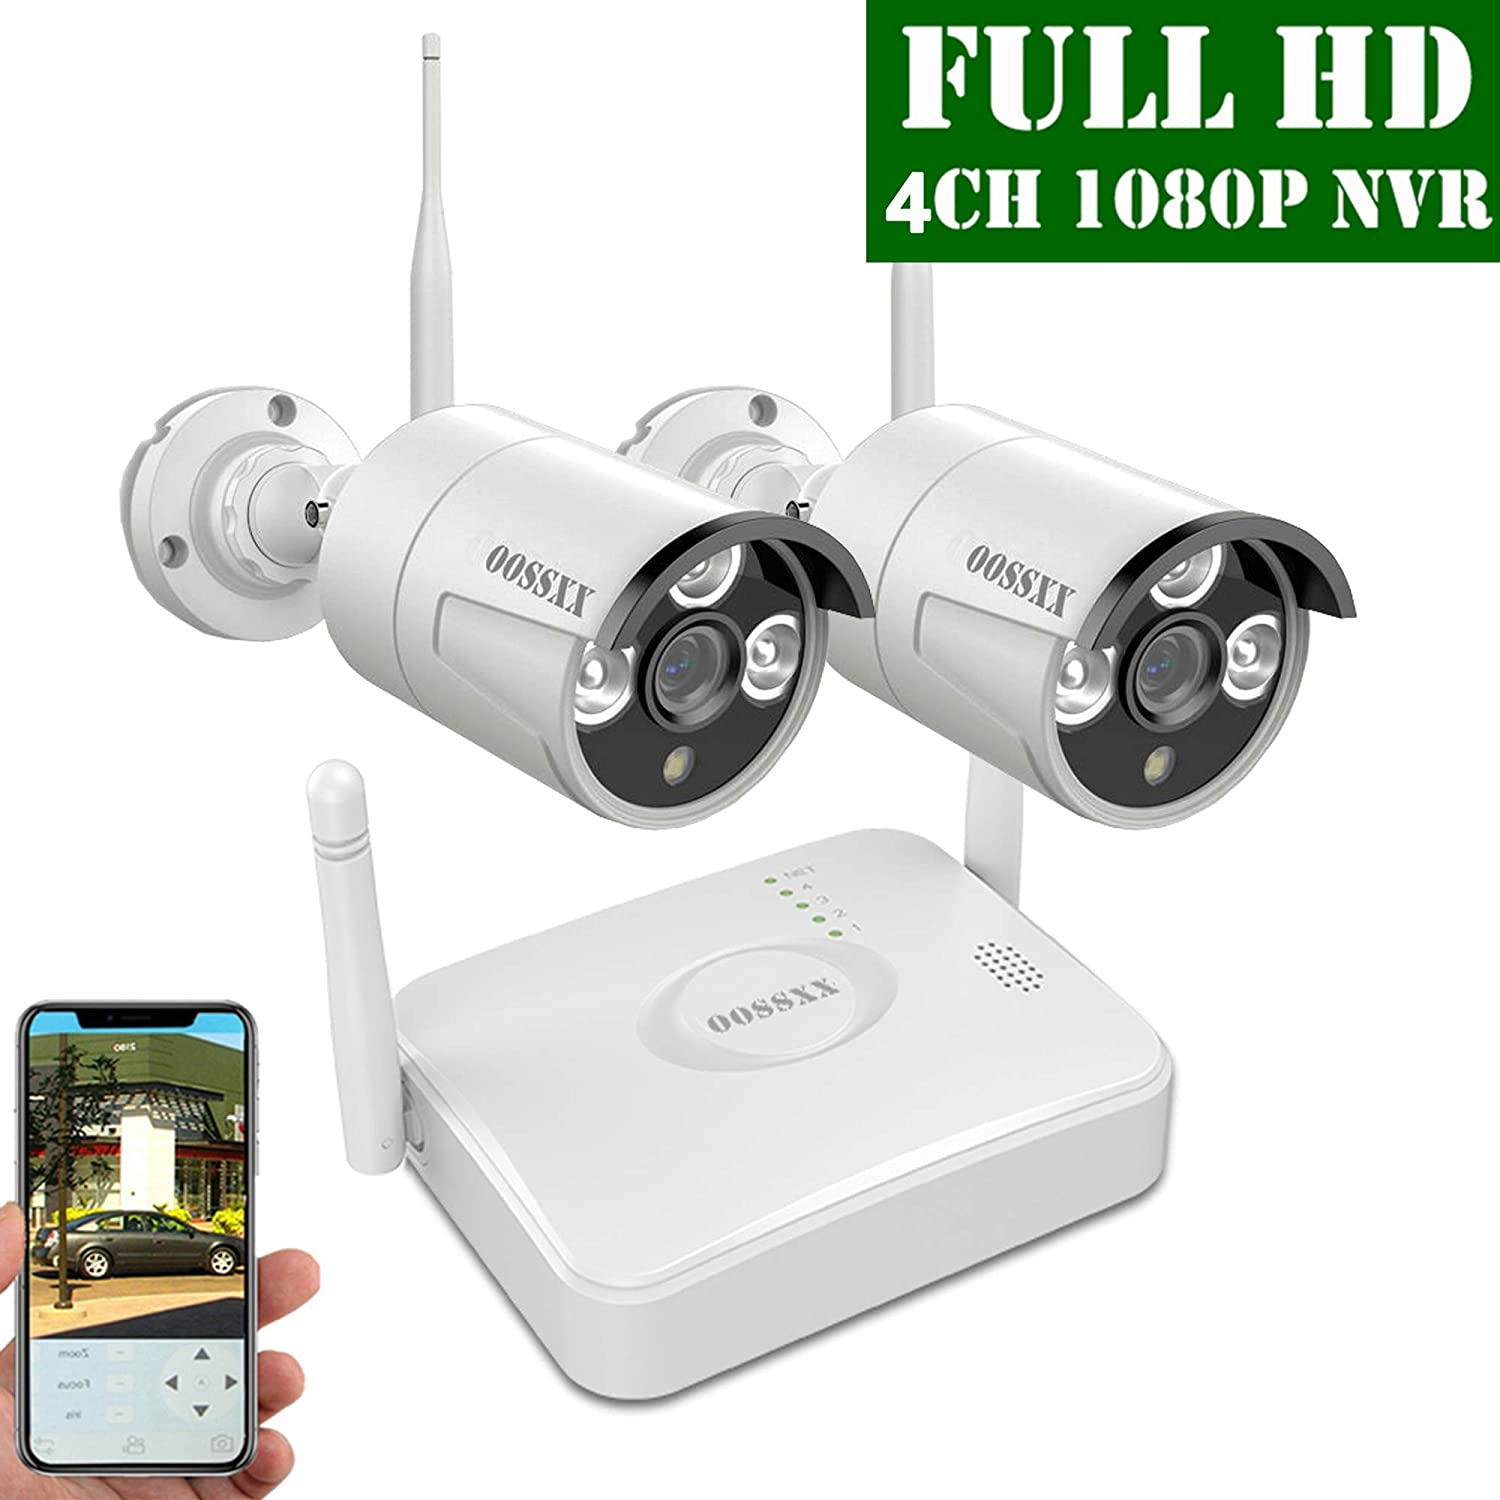 OOSSXX 4-Channel HD 1080P Wireless Mini Security Camera System,2Pcs 1080P Wireless Indoor Outdoor IR Bullet IP Cameras,P2P,App,No HDD